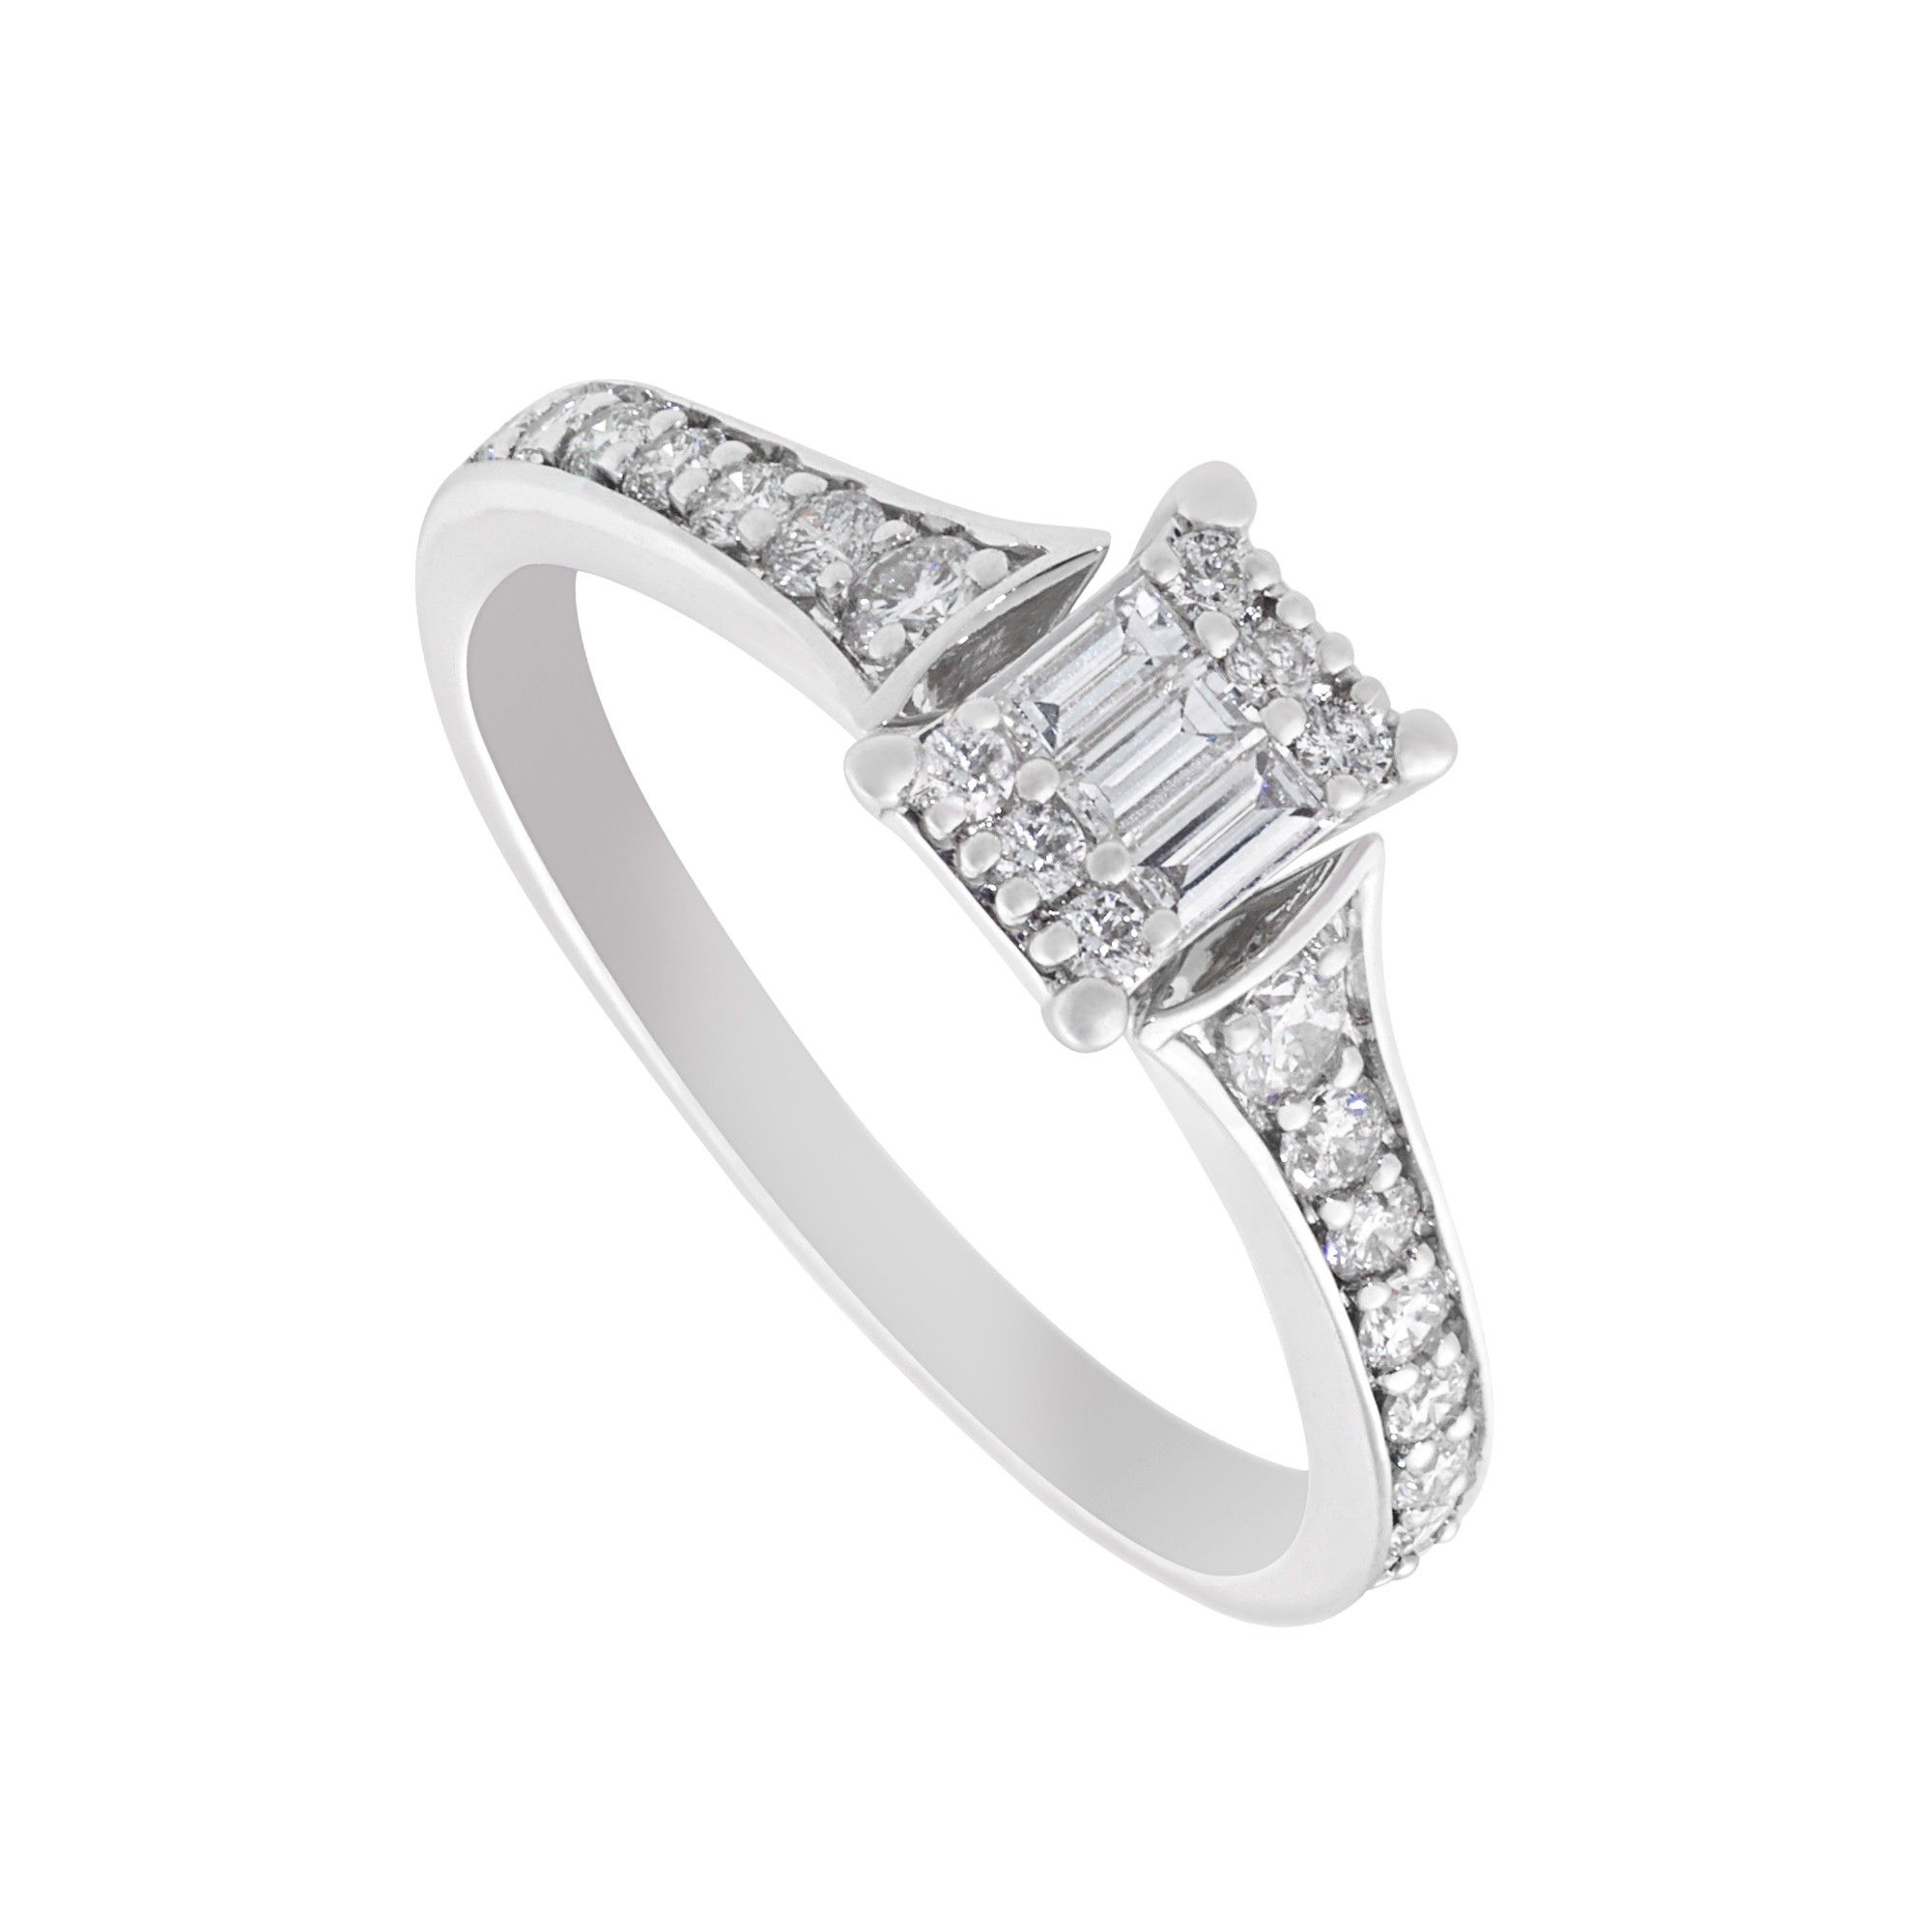 9ct White Gold 044 Carat Baguette And Round Diamond Ring